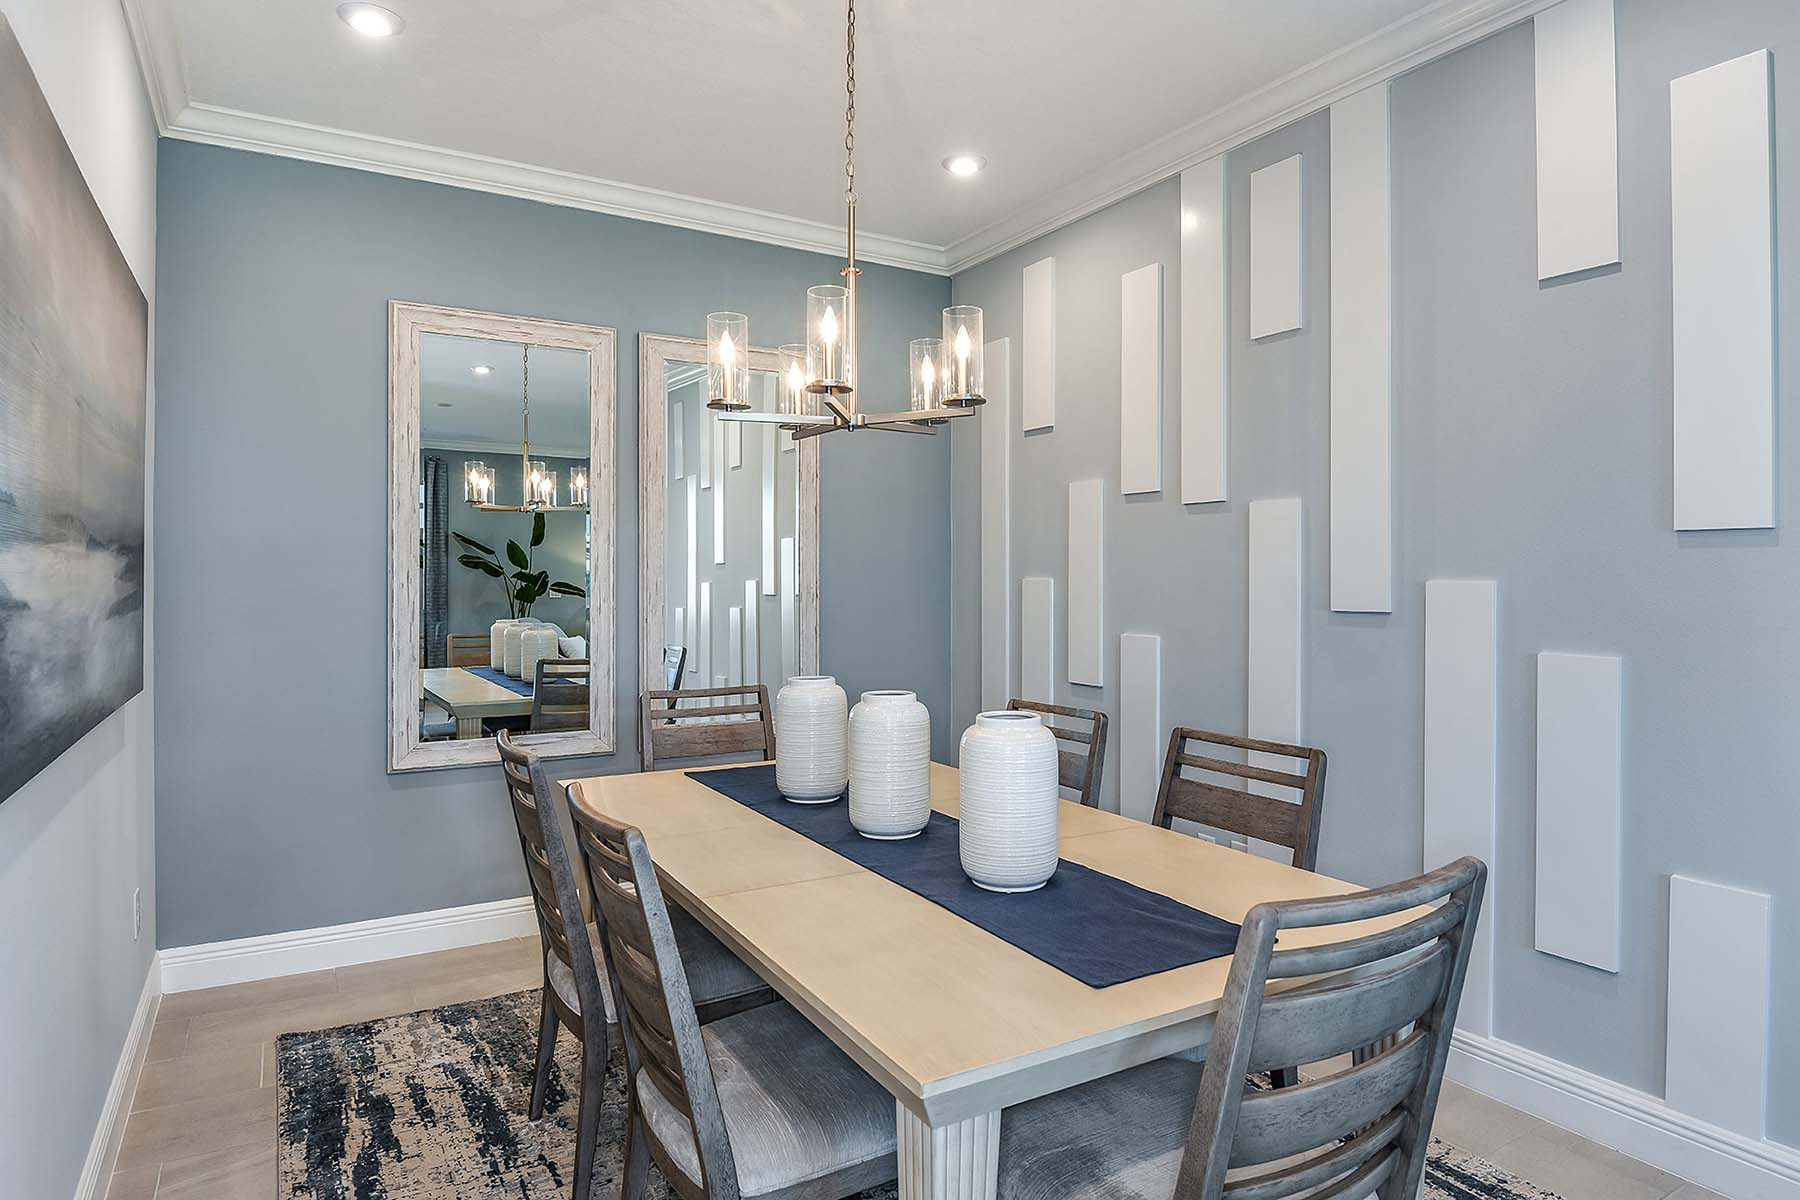 Oceana Plan Dining at Bonavie Cove in Fort Myers Florida by Mattamy Homes